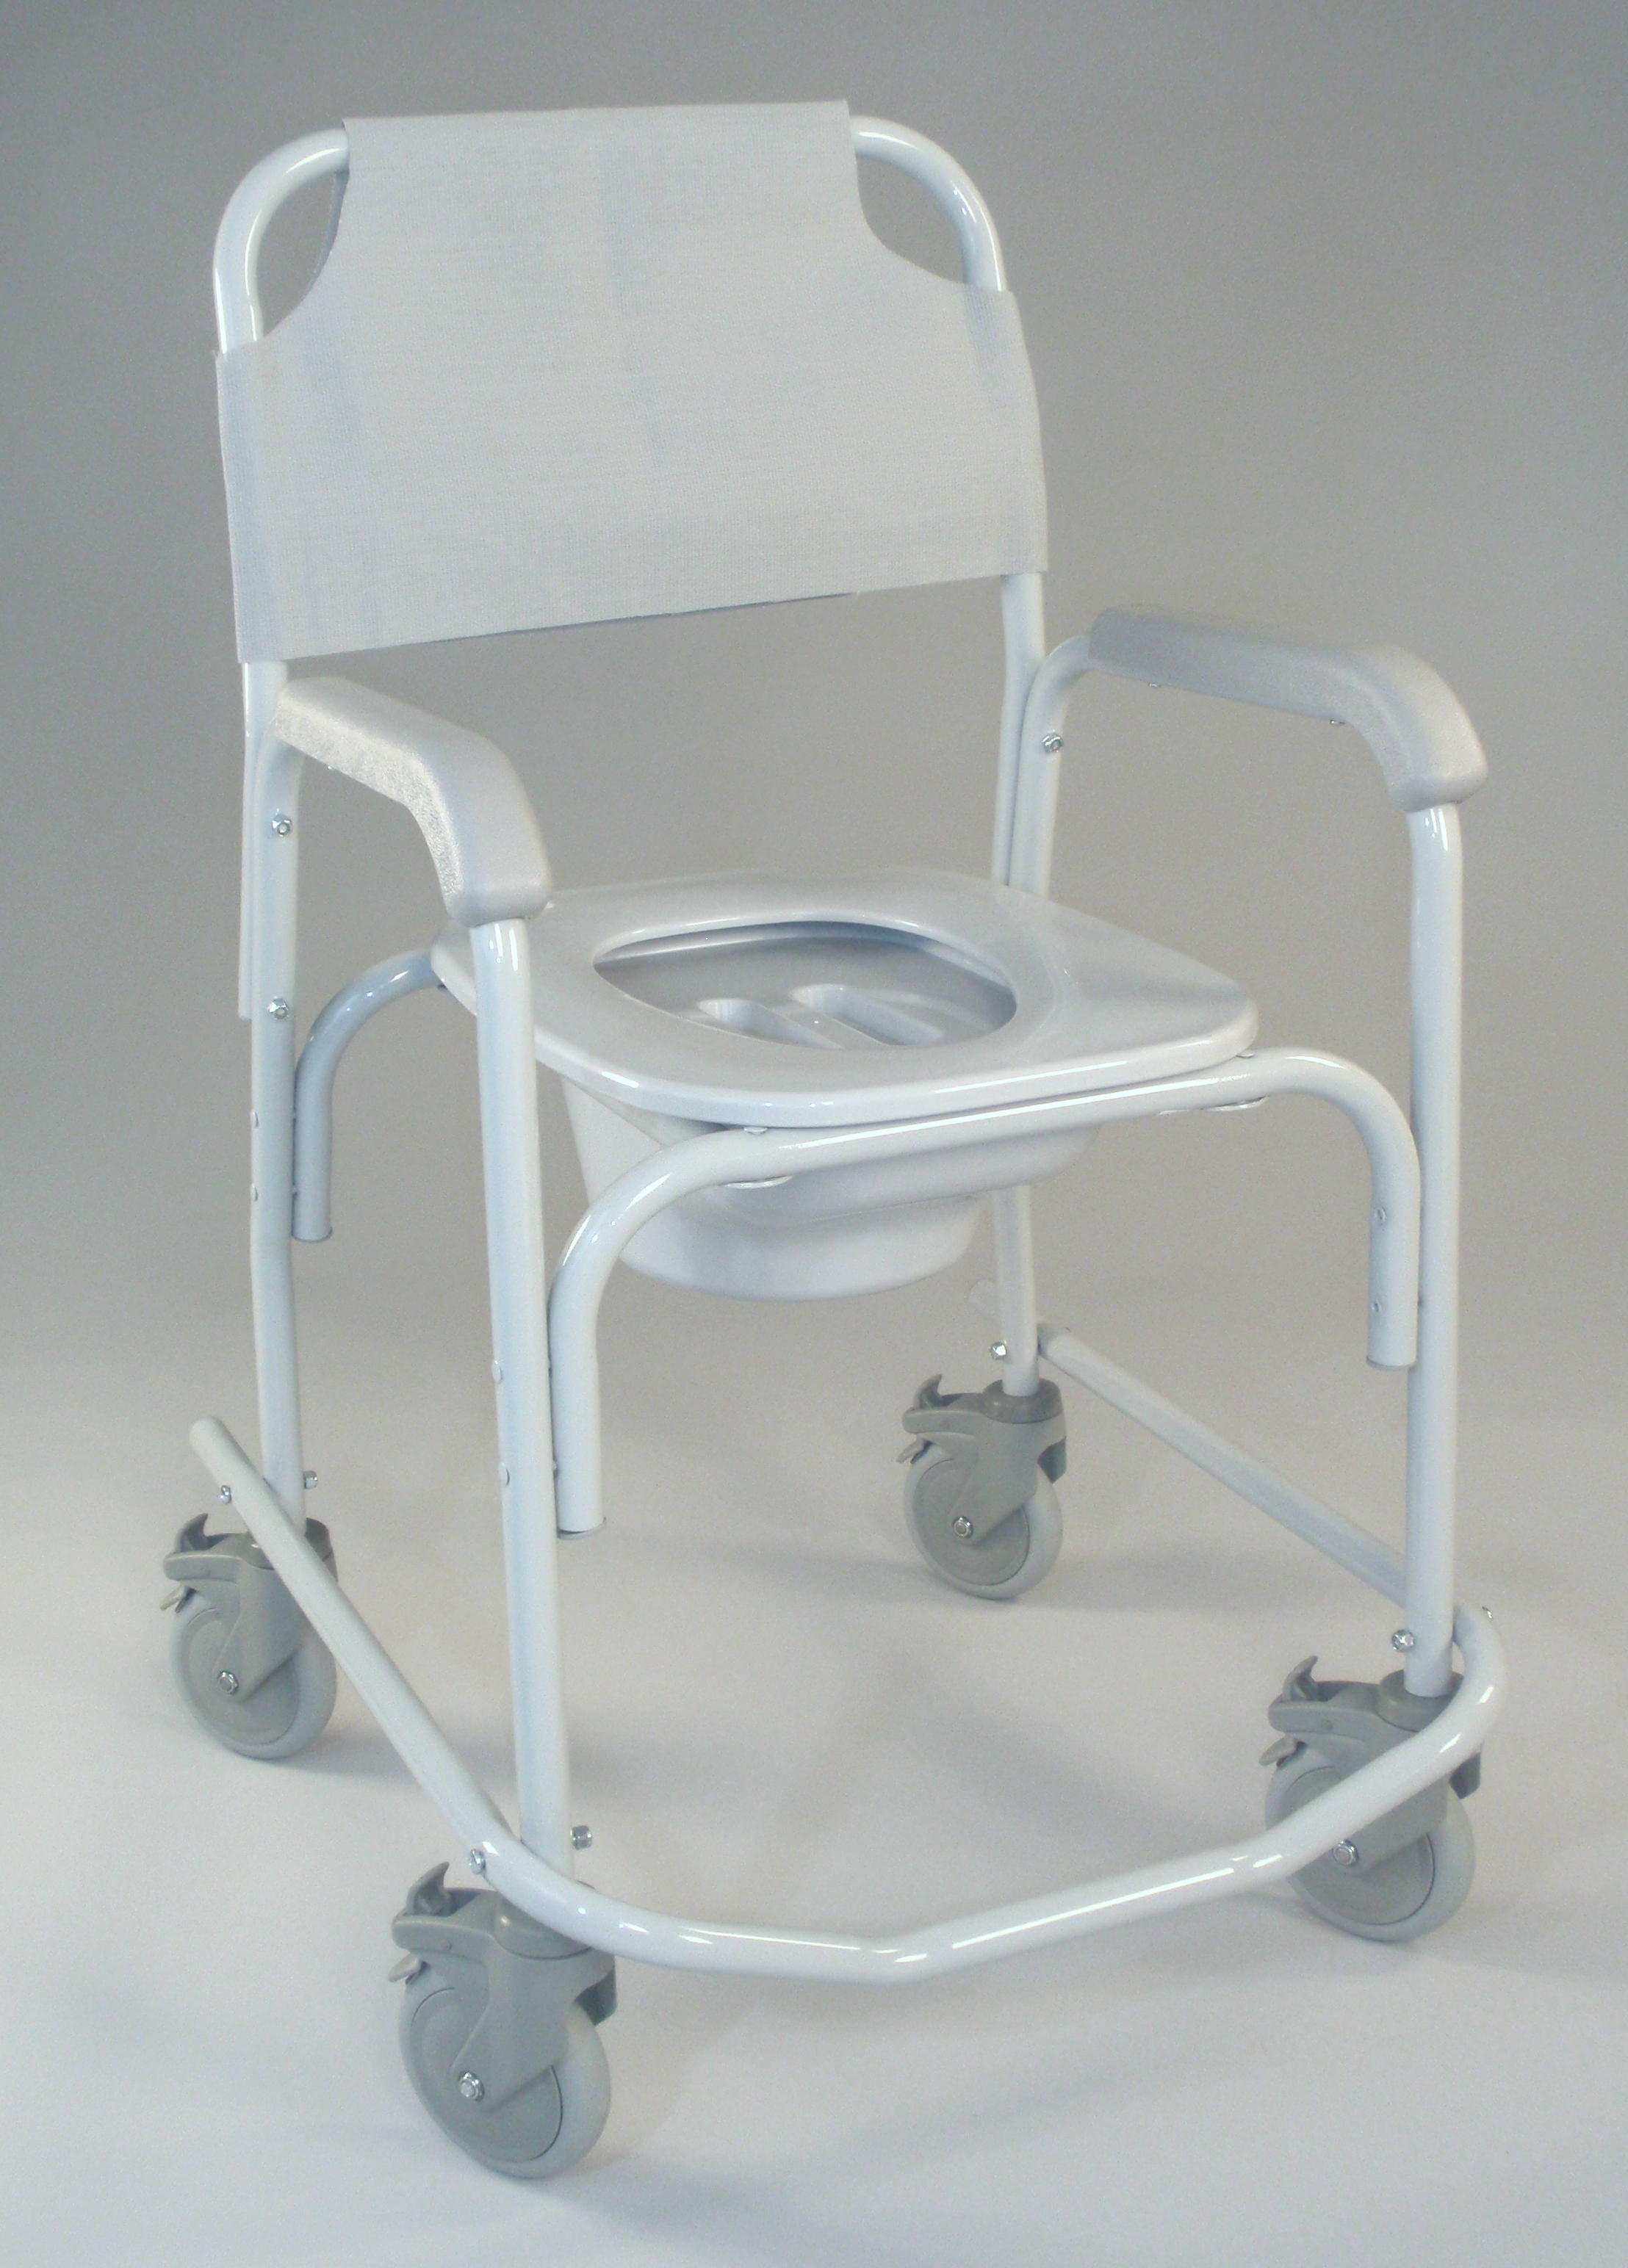 Shower Commode Chair with Elongated Toilet Seat